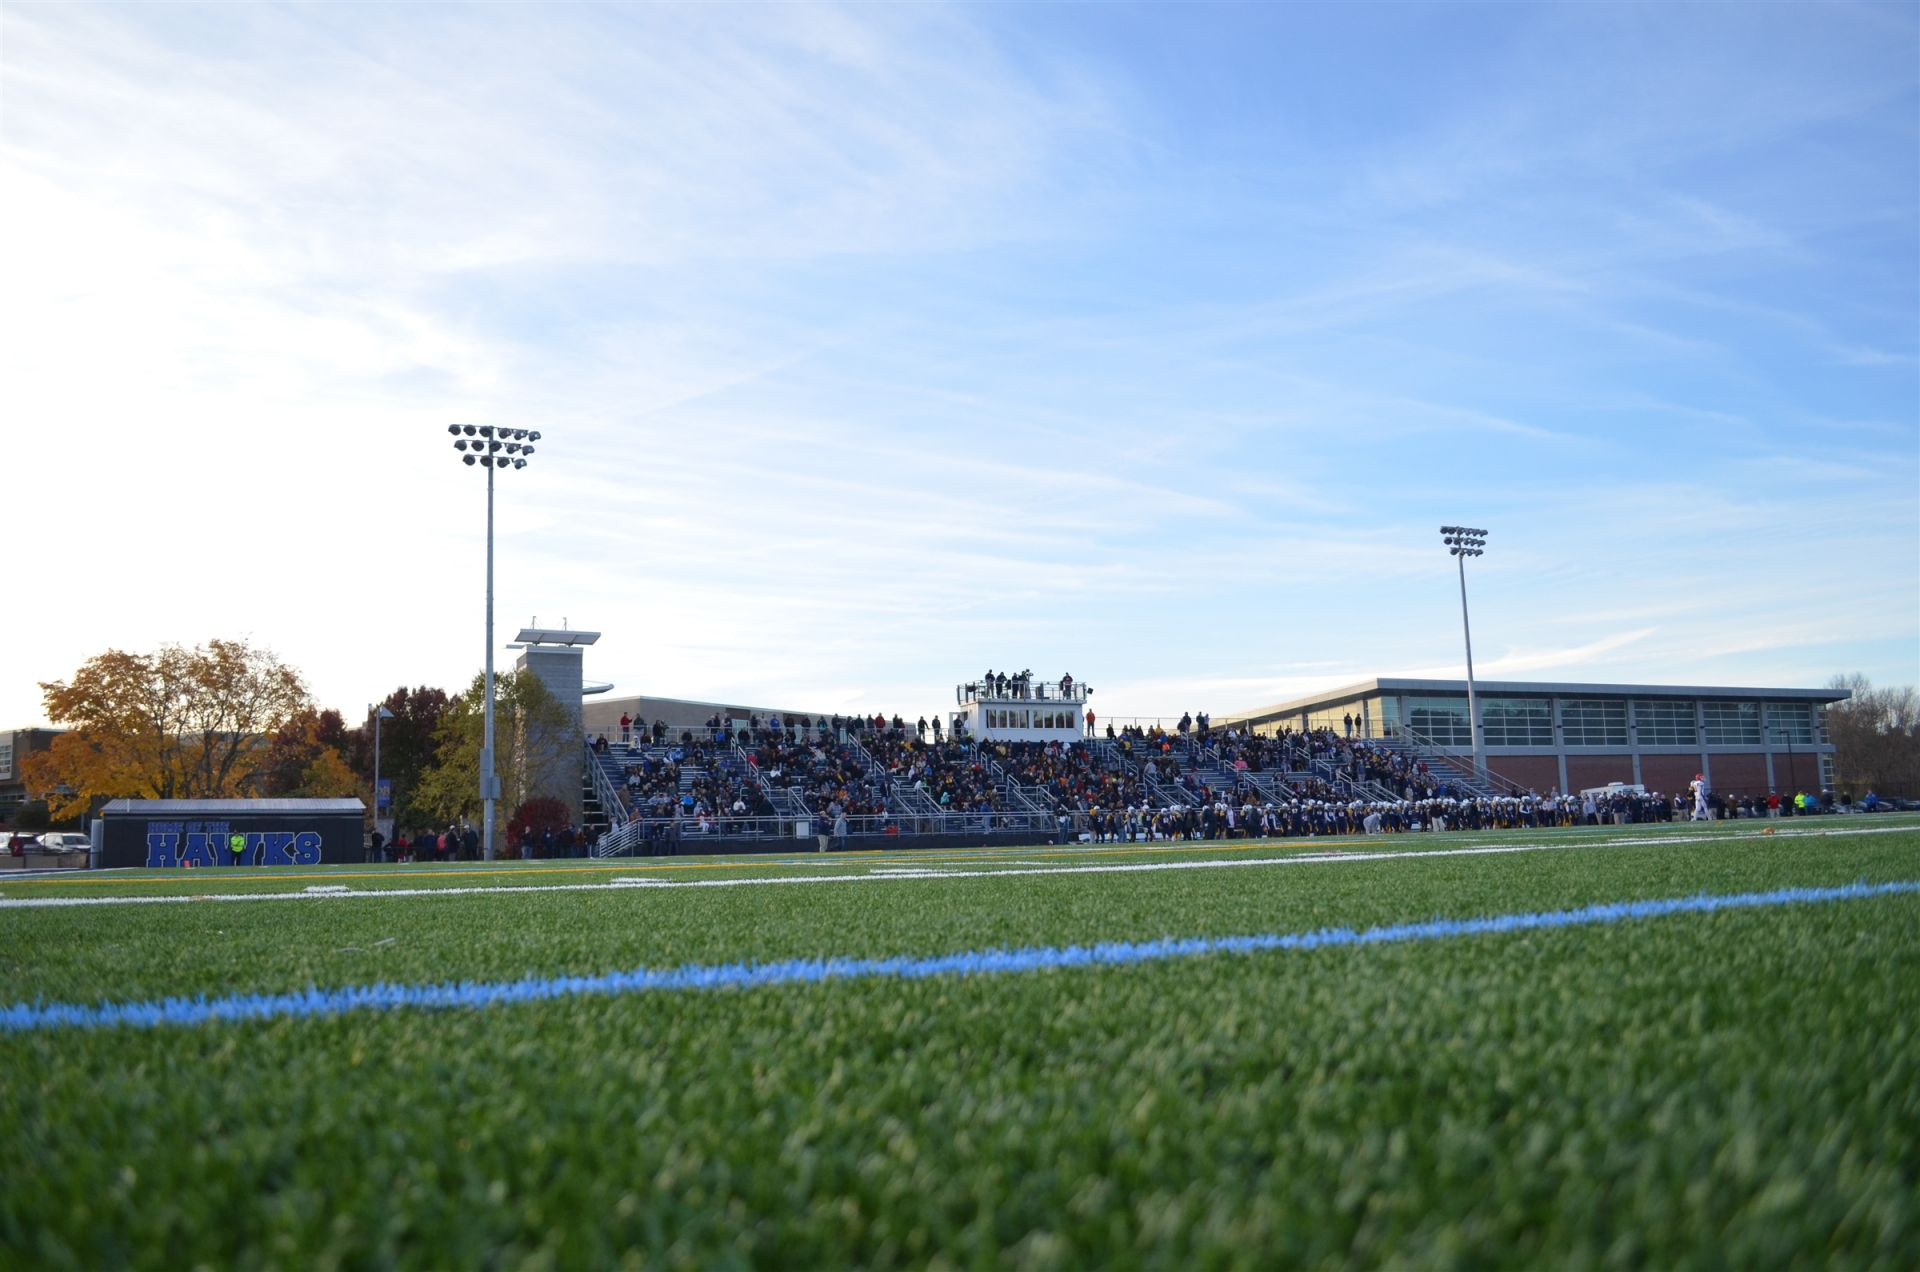 There are 4 full-size athletic fields on the Xaverian campus.